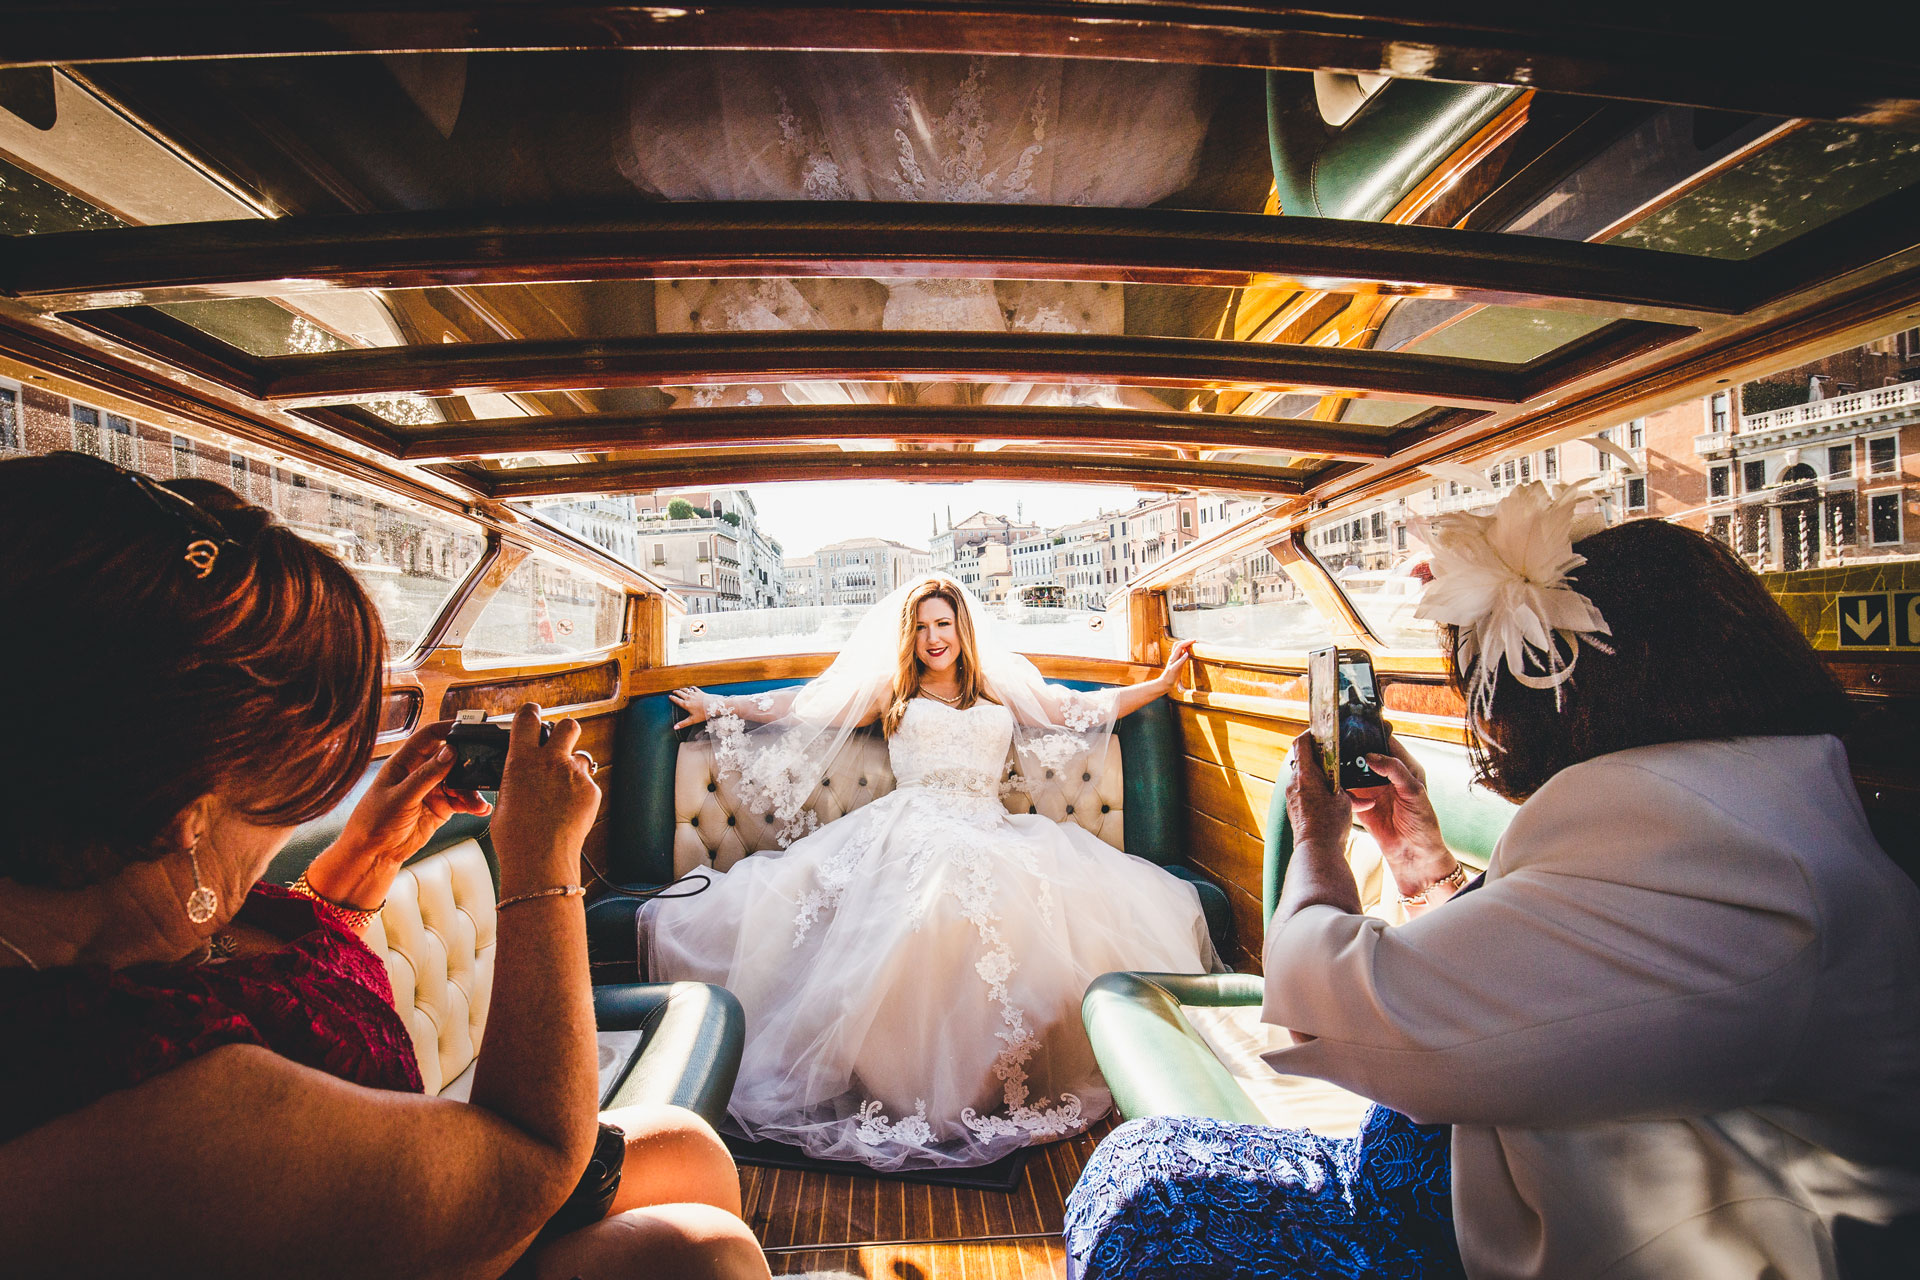 Wedding Reportage Photo from Ca' Sagredo Hotel, Venice | The bride travels on a water taxi